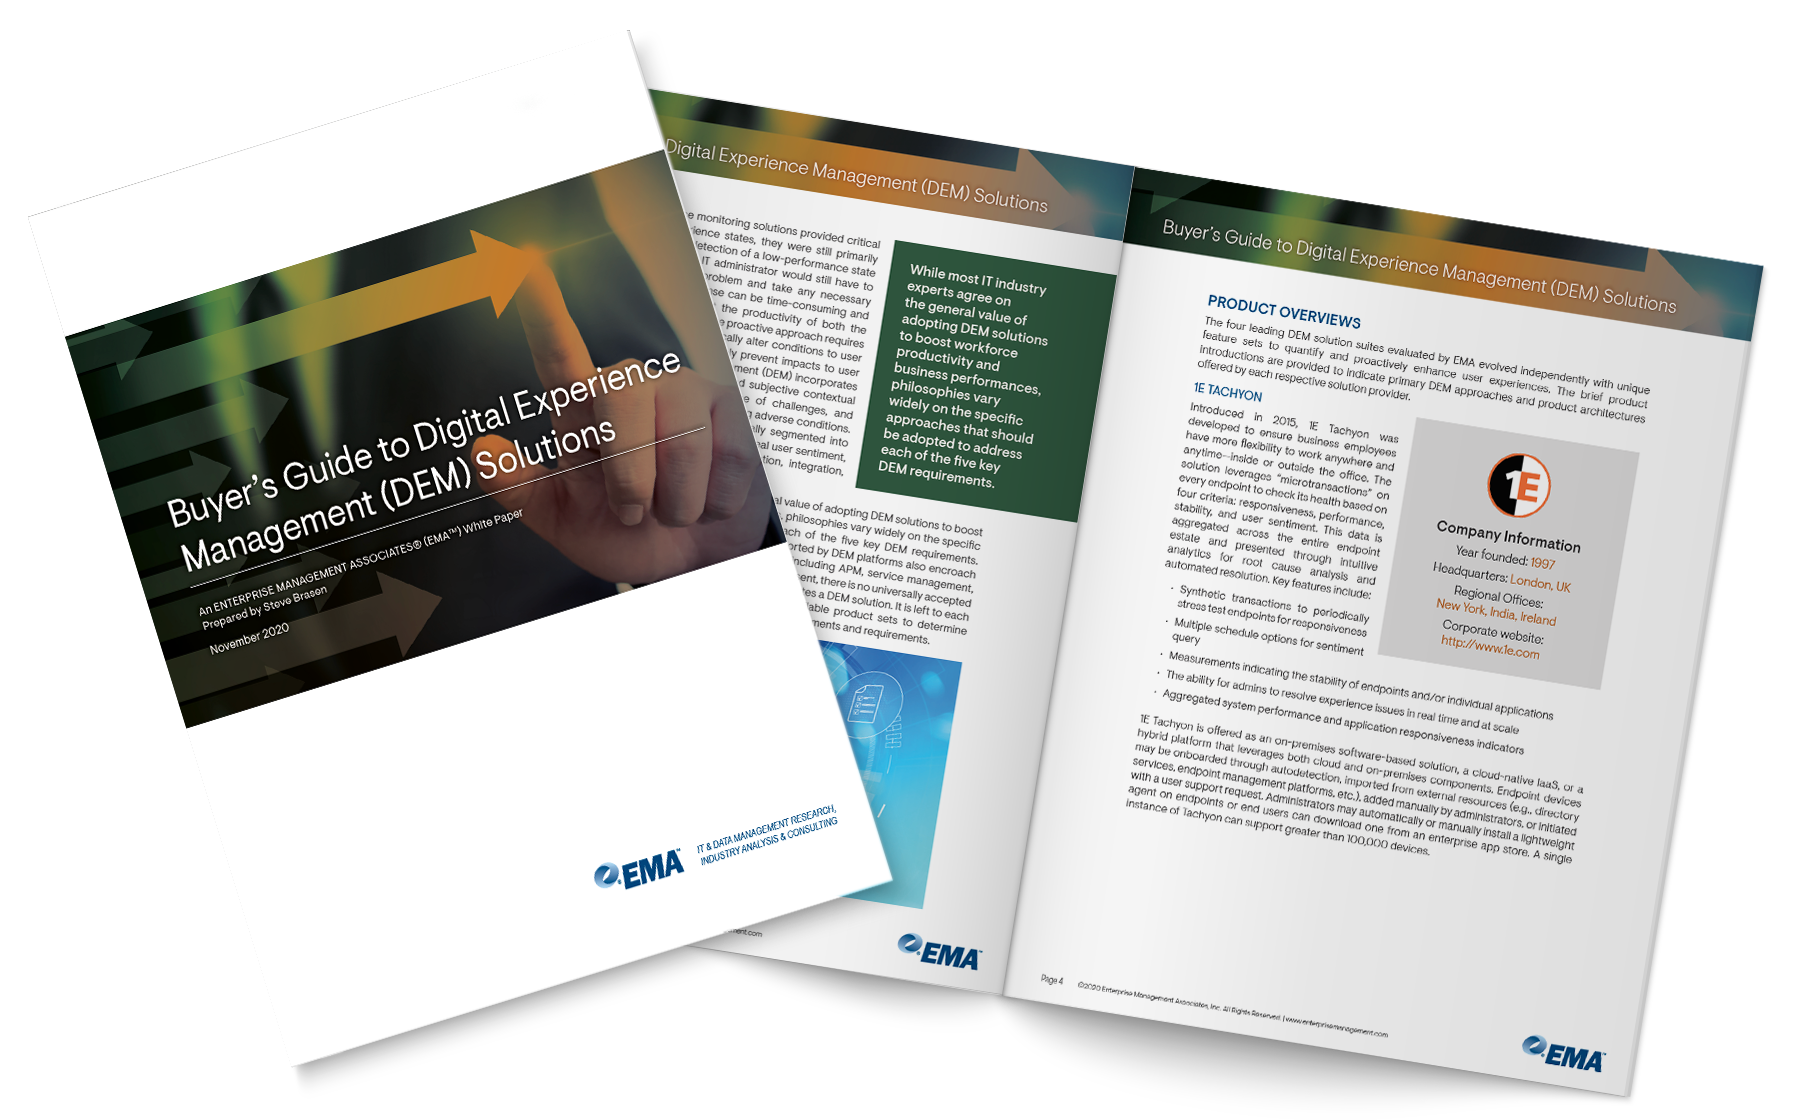 Buyer's Guide to Digital Experience Management (DEM) Solutions